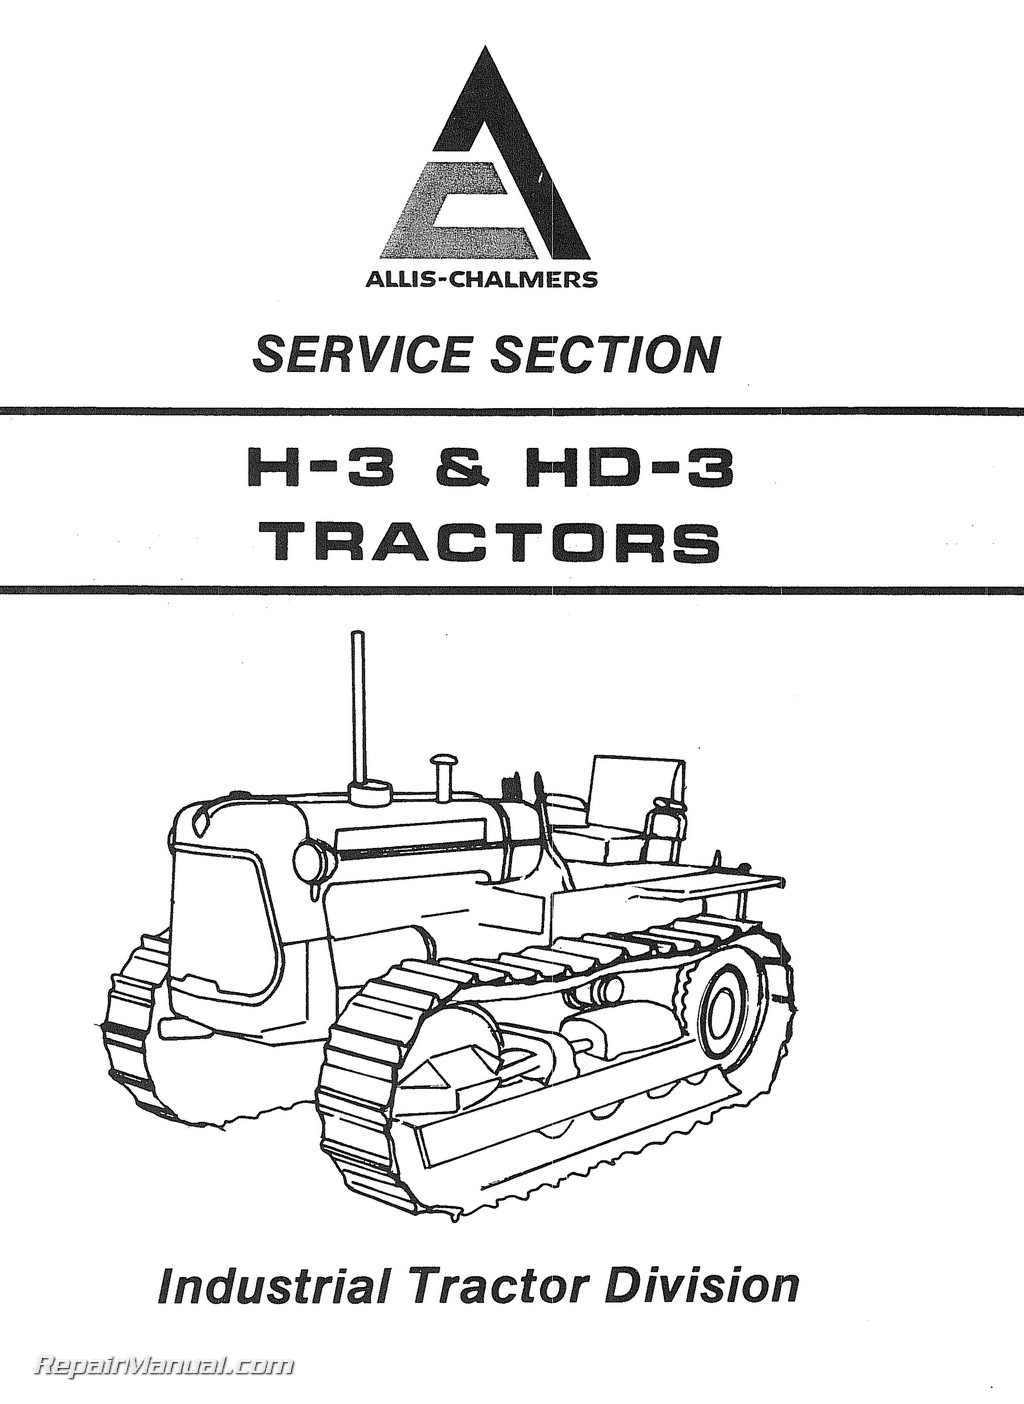 Wiring Diagram For A Golf Cart Allis Chalmers H3 Hd3 Tractor Service Manual